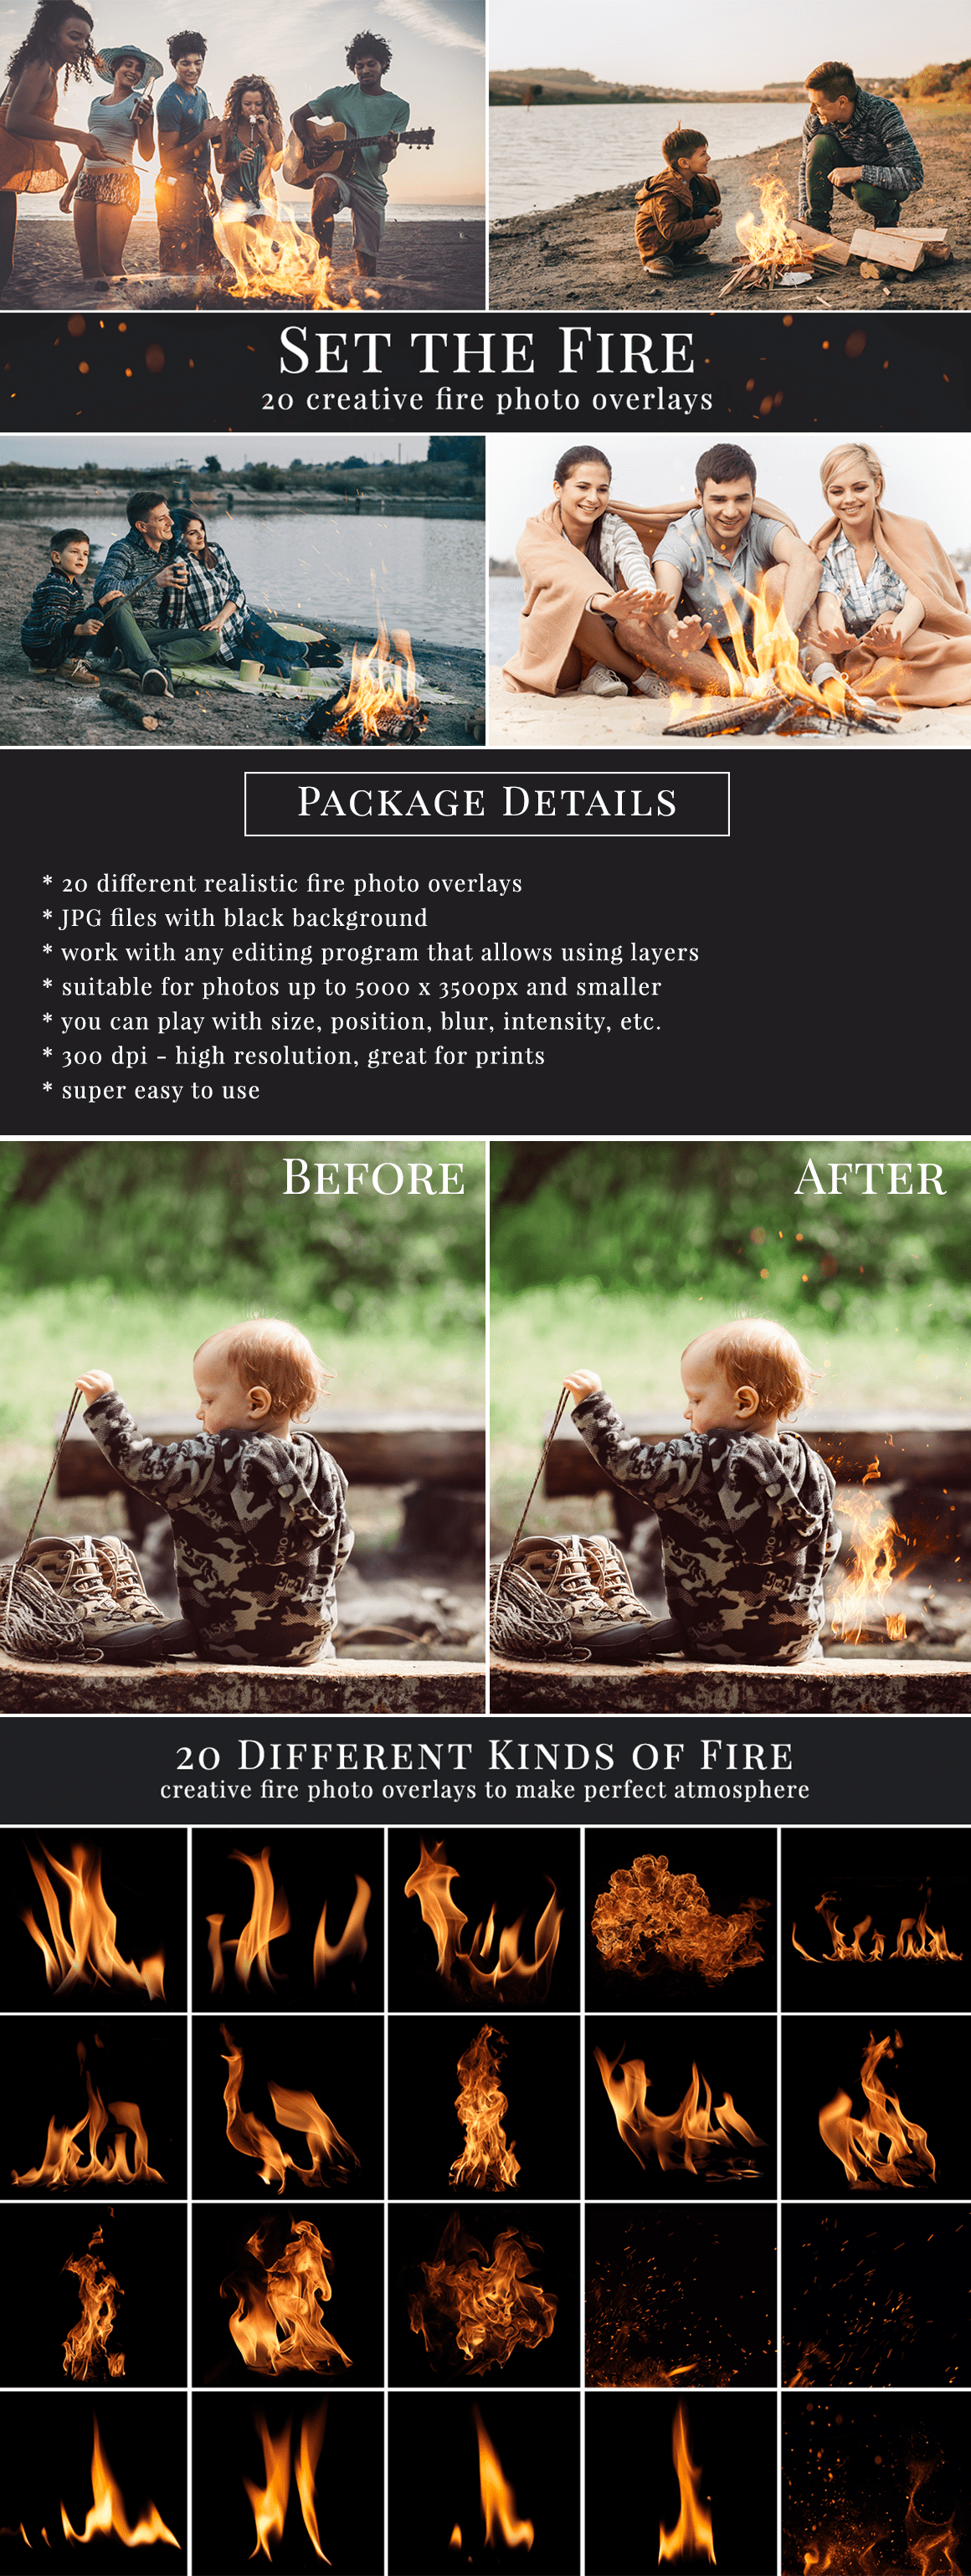 Creative fire photo overlays for Photoshop, Zoner, Gimp etc. Super easy to use, very realistic result just in one minute. Great for outdoor photography. Photo overlays for creative photographer from Brown Leopard.